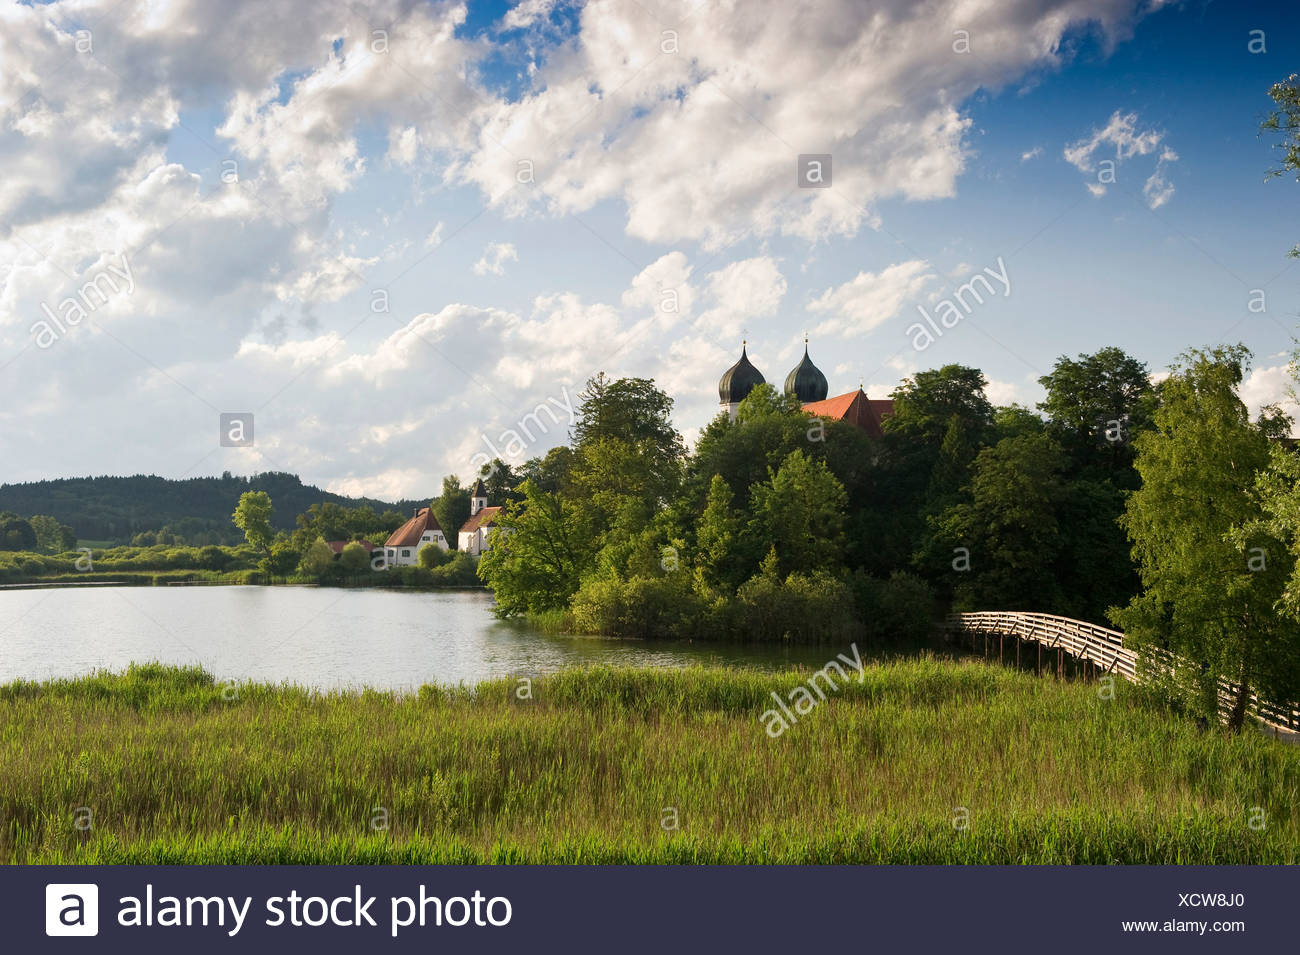 Klostersee lake and Kloster Seeon Abbey, Seeon, Chiemgau region, Bavaria - Stock Image